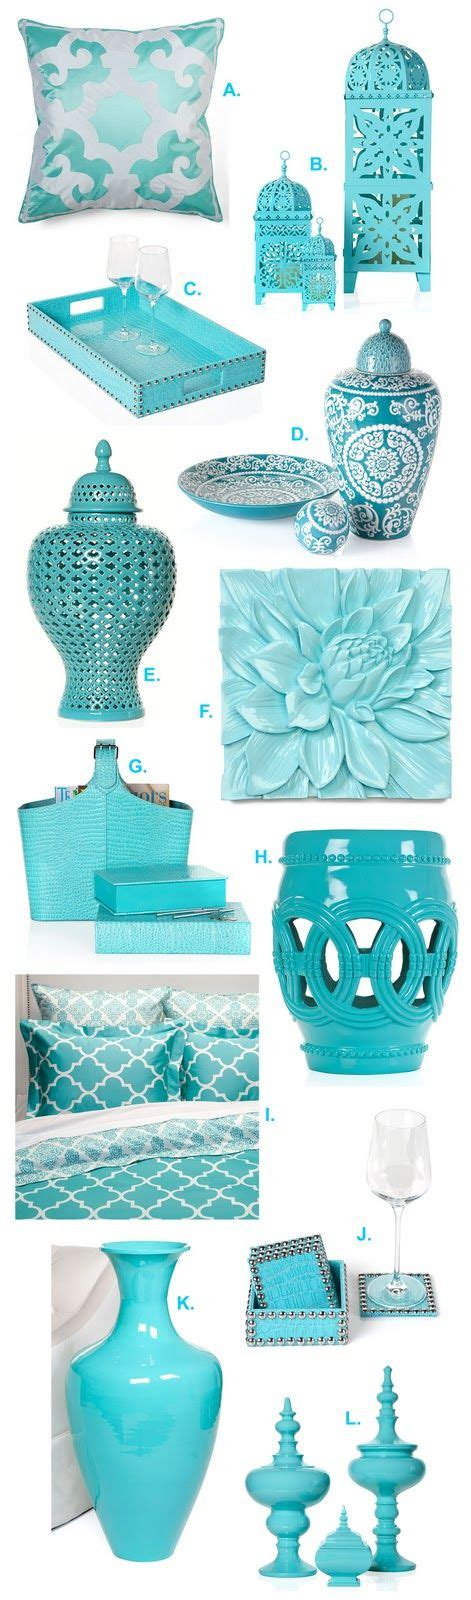 turquoise home decor accessories turquoise home decor accessories interior design